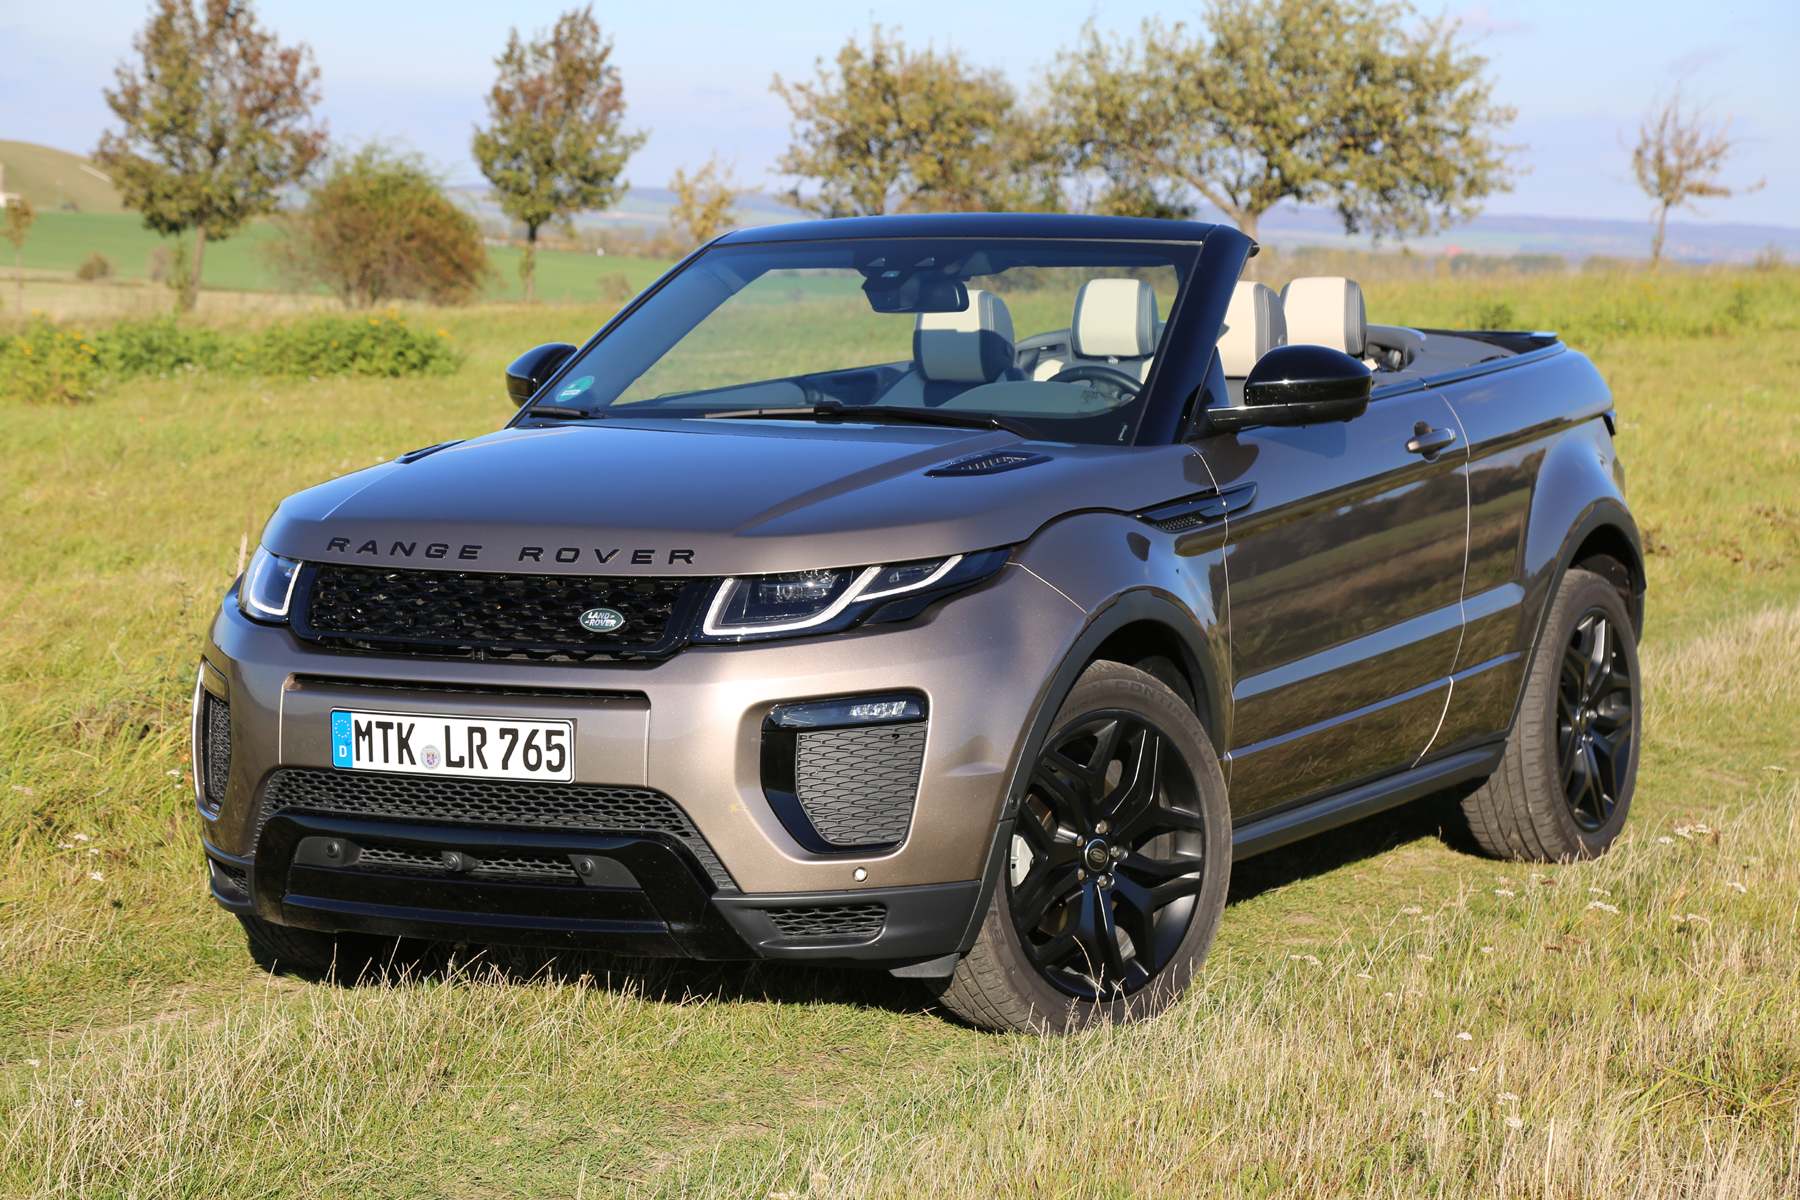 range rover evoque cabrio drivers club germany. Black Bedroom Furniture Sets. Home Design Ideas